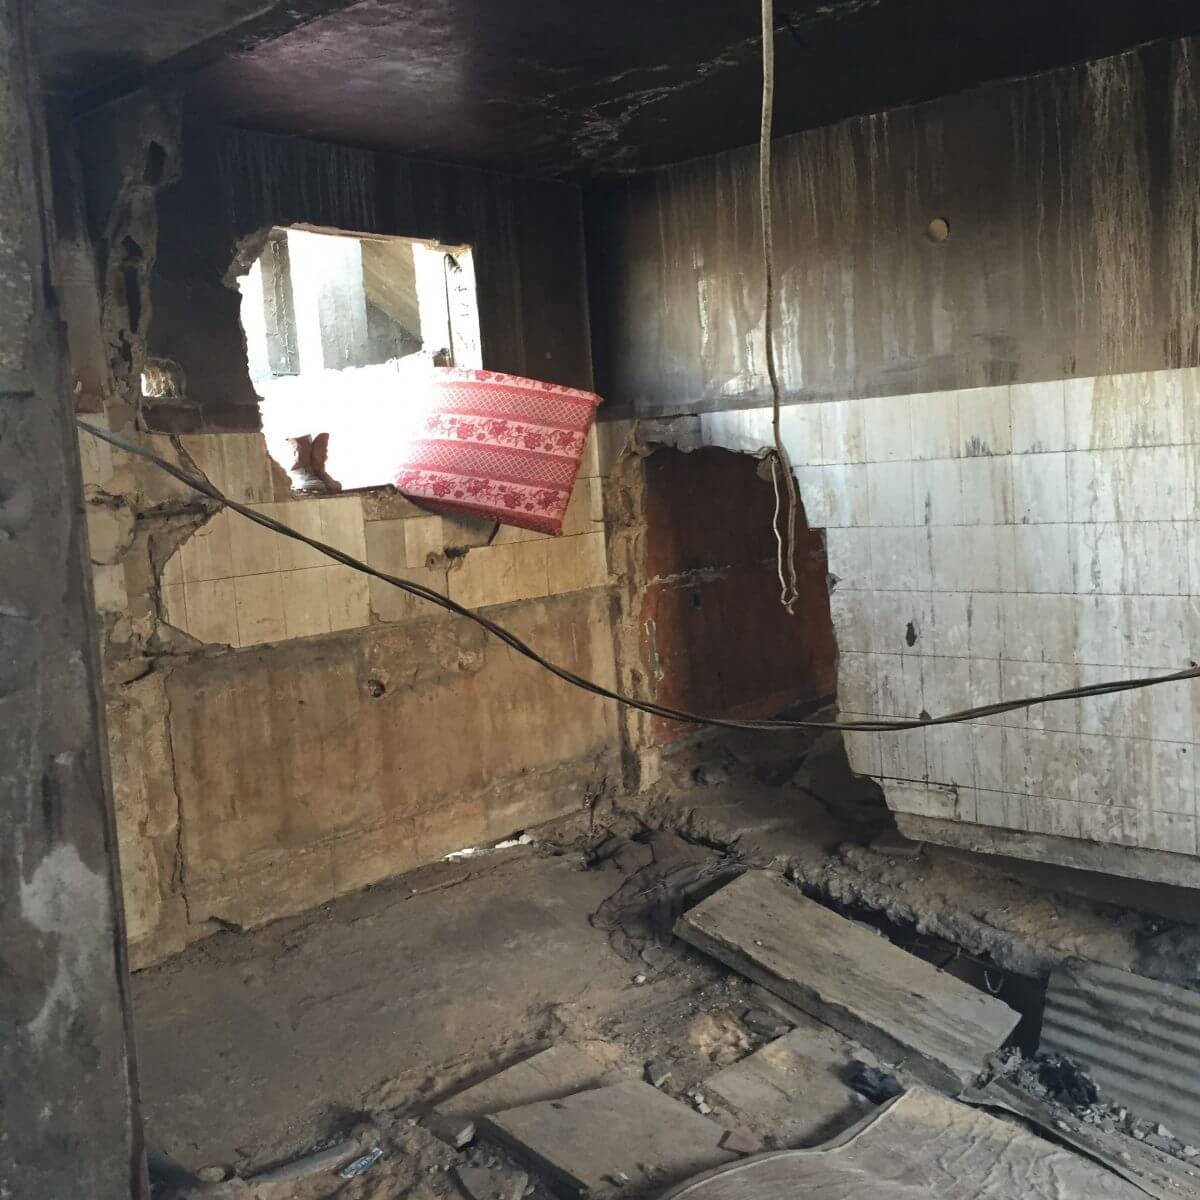 A room in a partially destroyed house in Shuja'yya where seven people live (photo Nancy Murray, April 19)